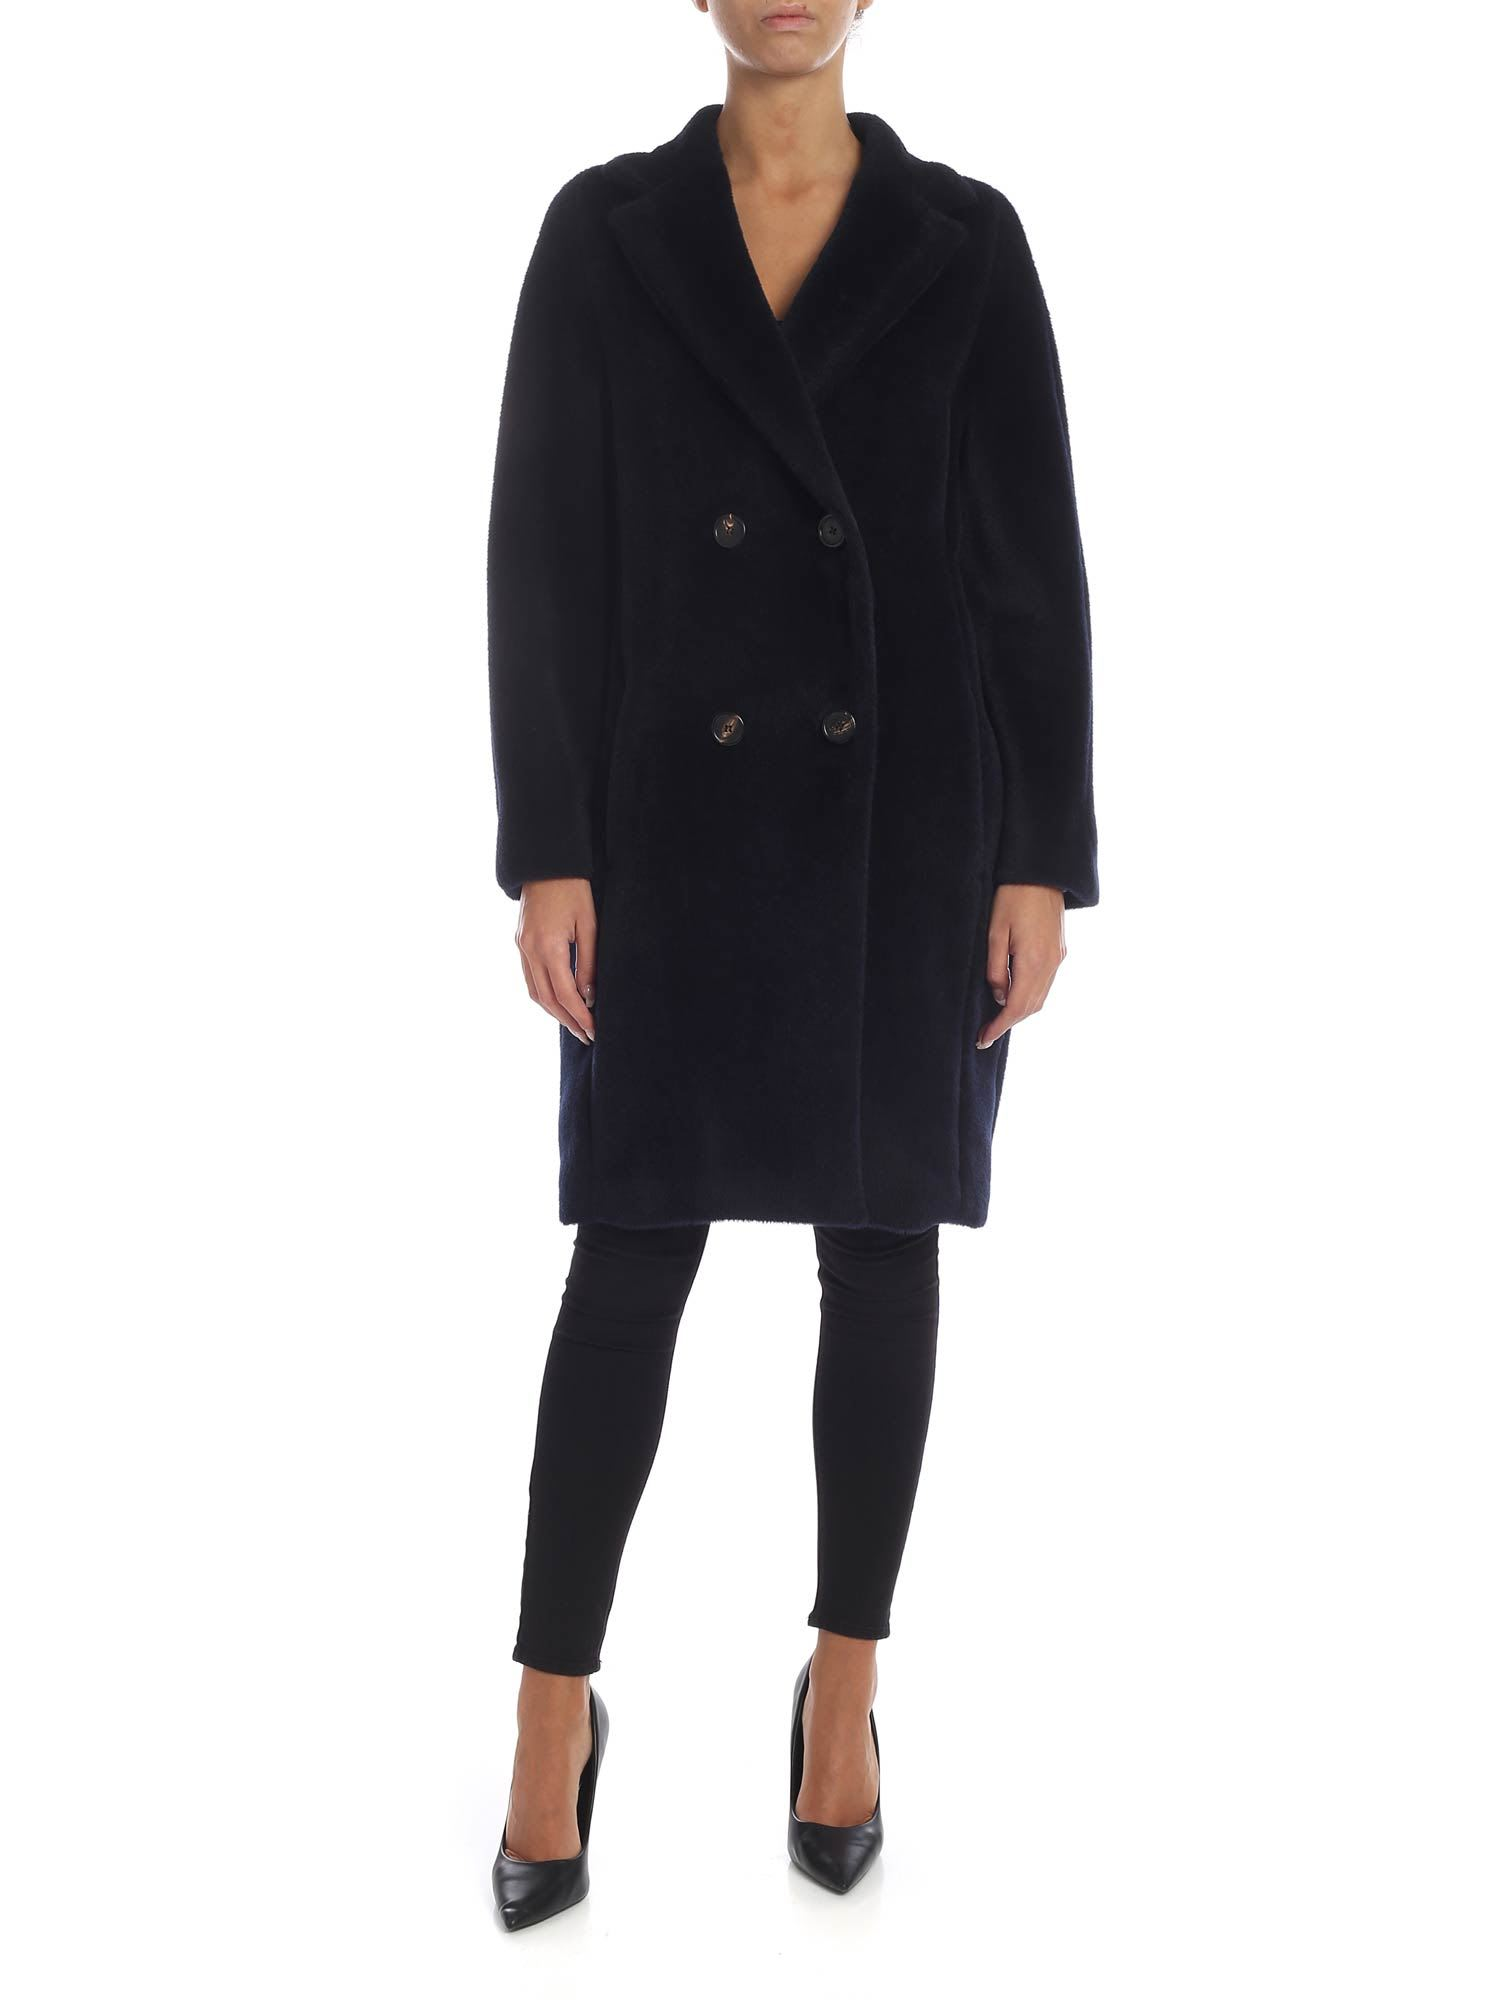 S Max Mara – Rose Coat